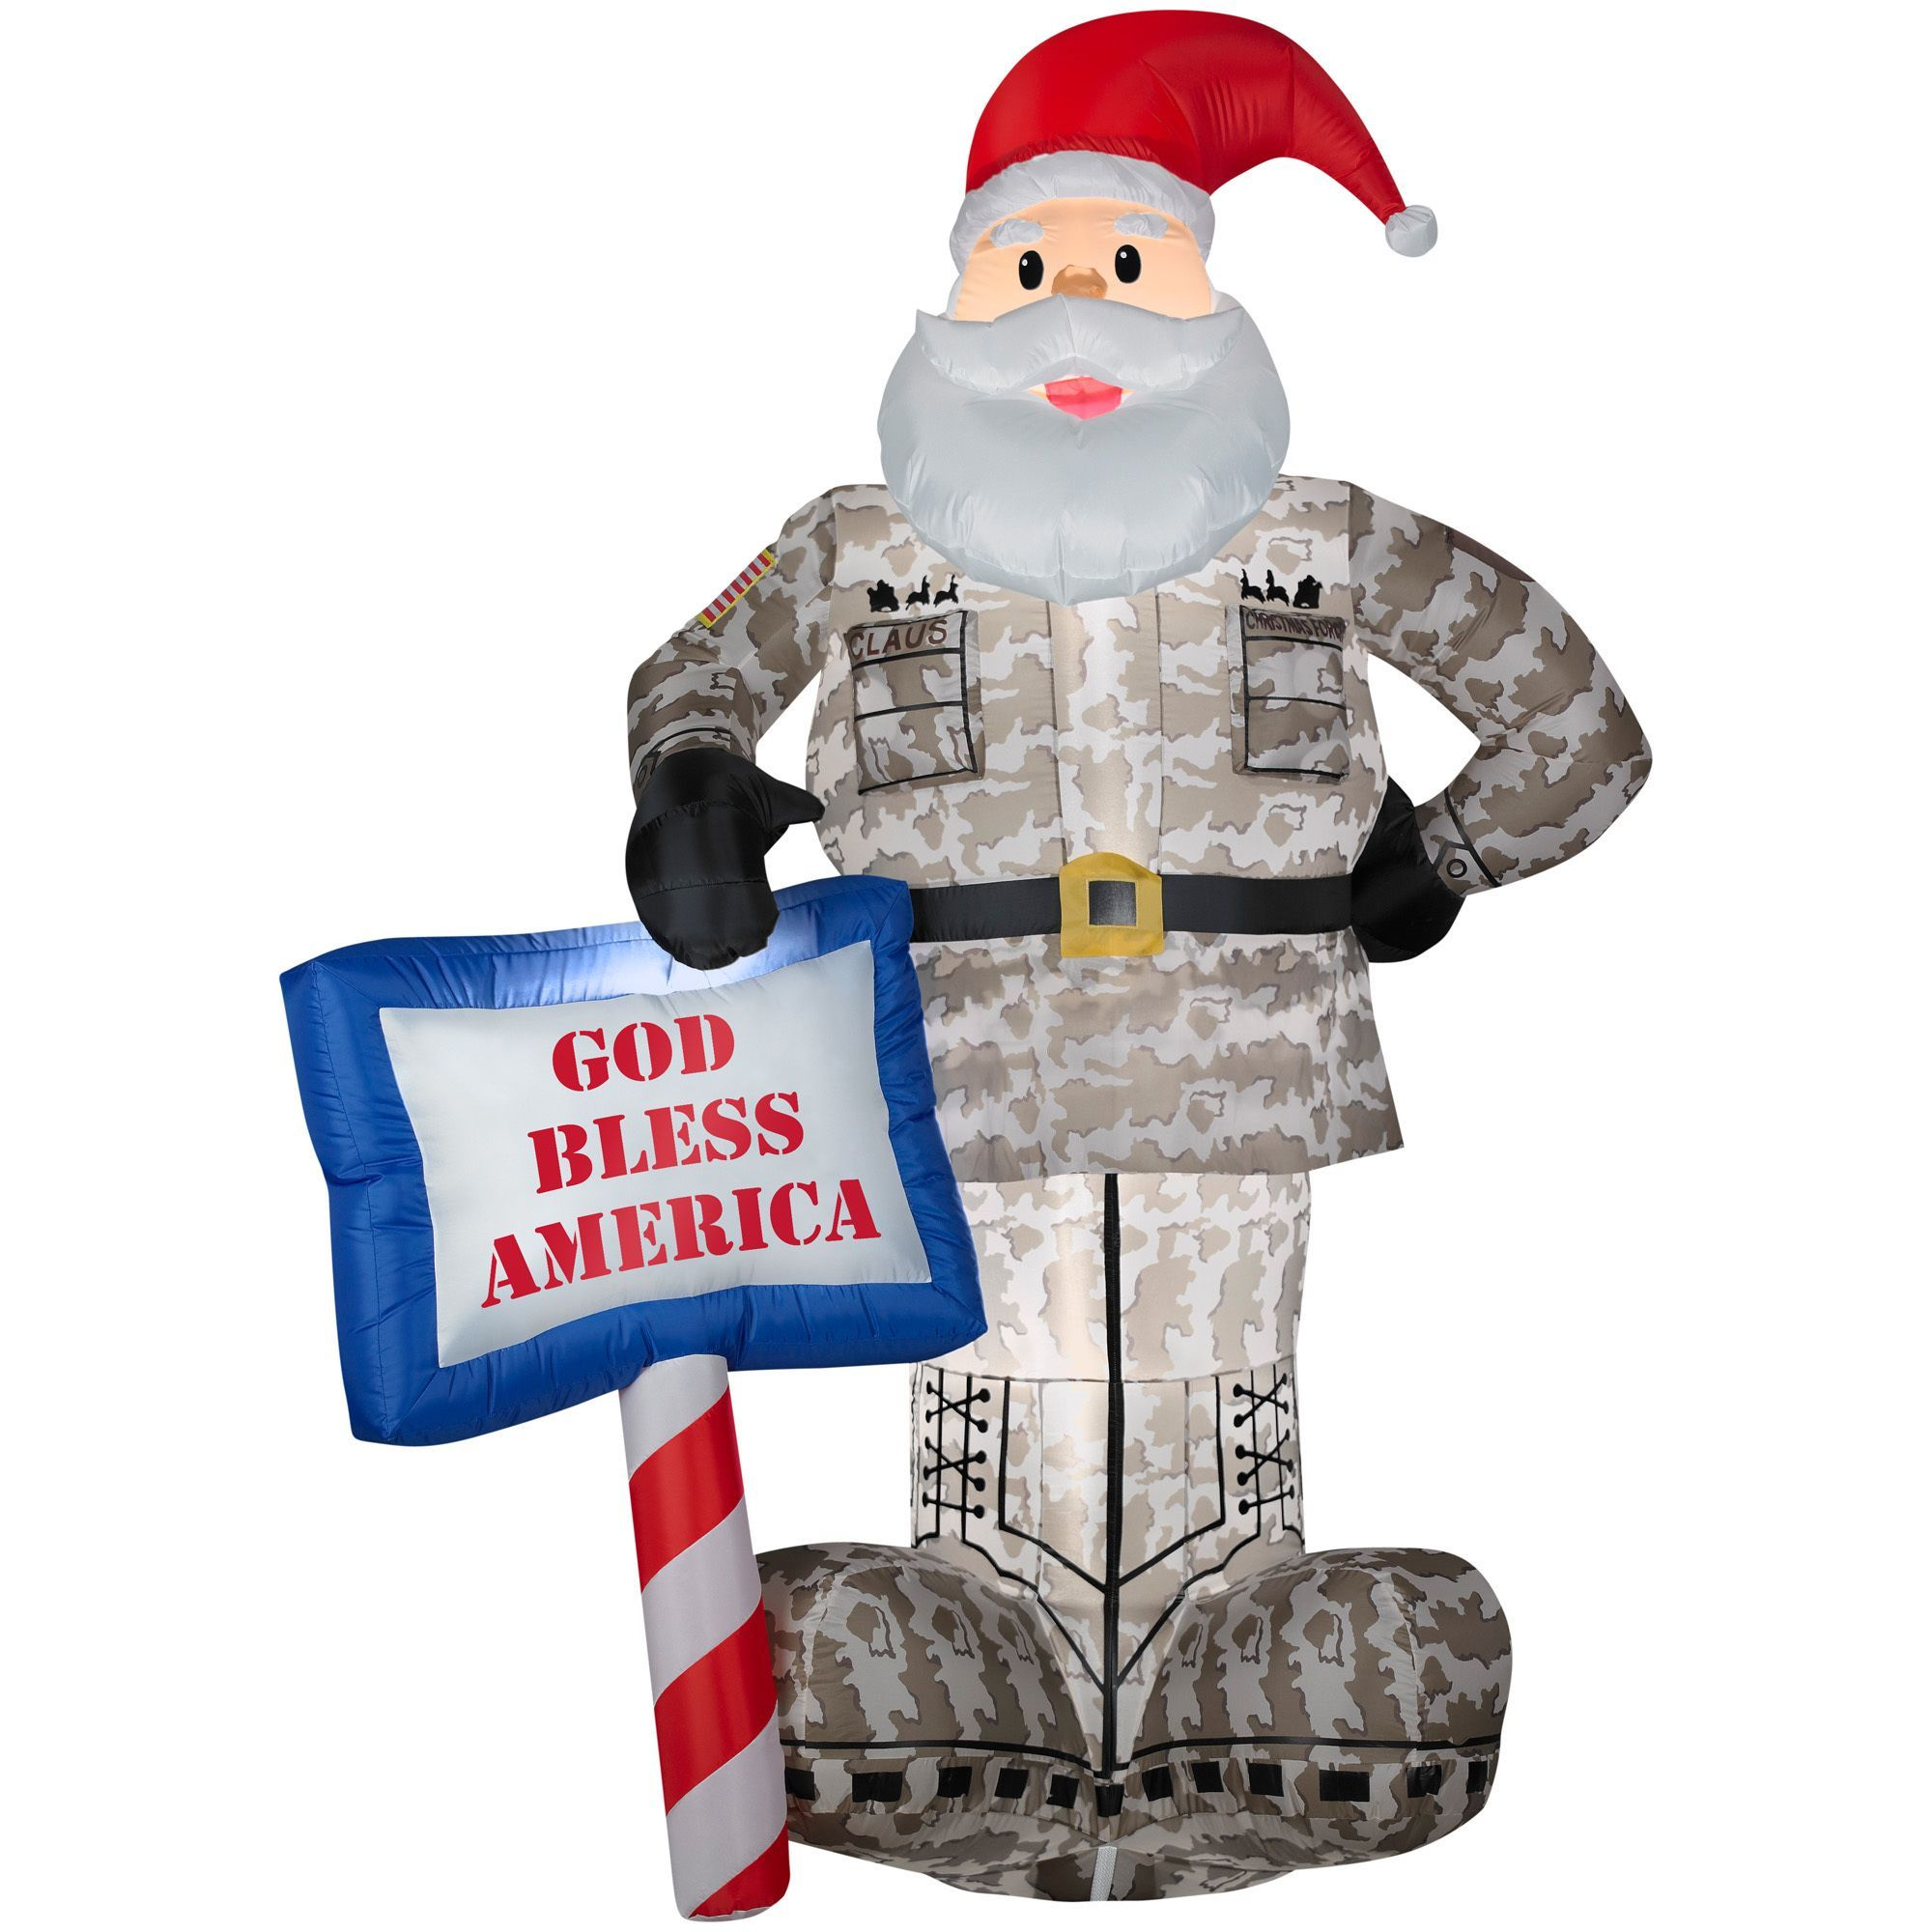 Gemmy inflatable airblown reindeer outdoor christmas decoration lowe - Gemmy Airblown Inflatables Military Santa With God Bless America Sign